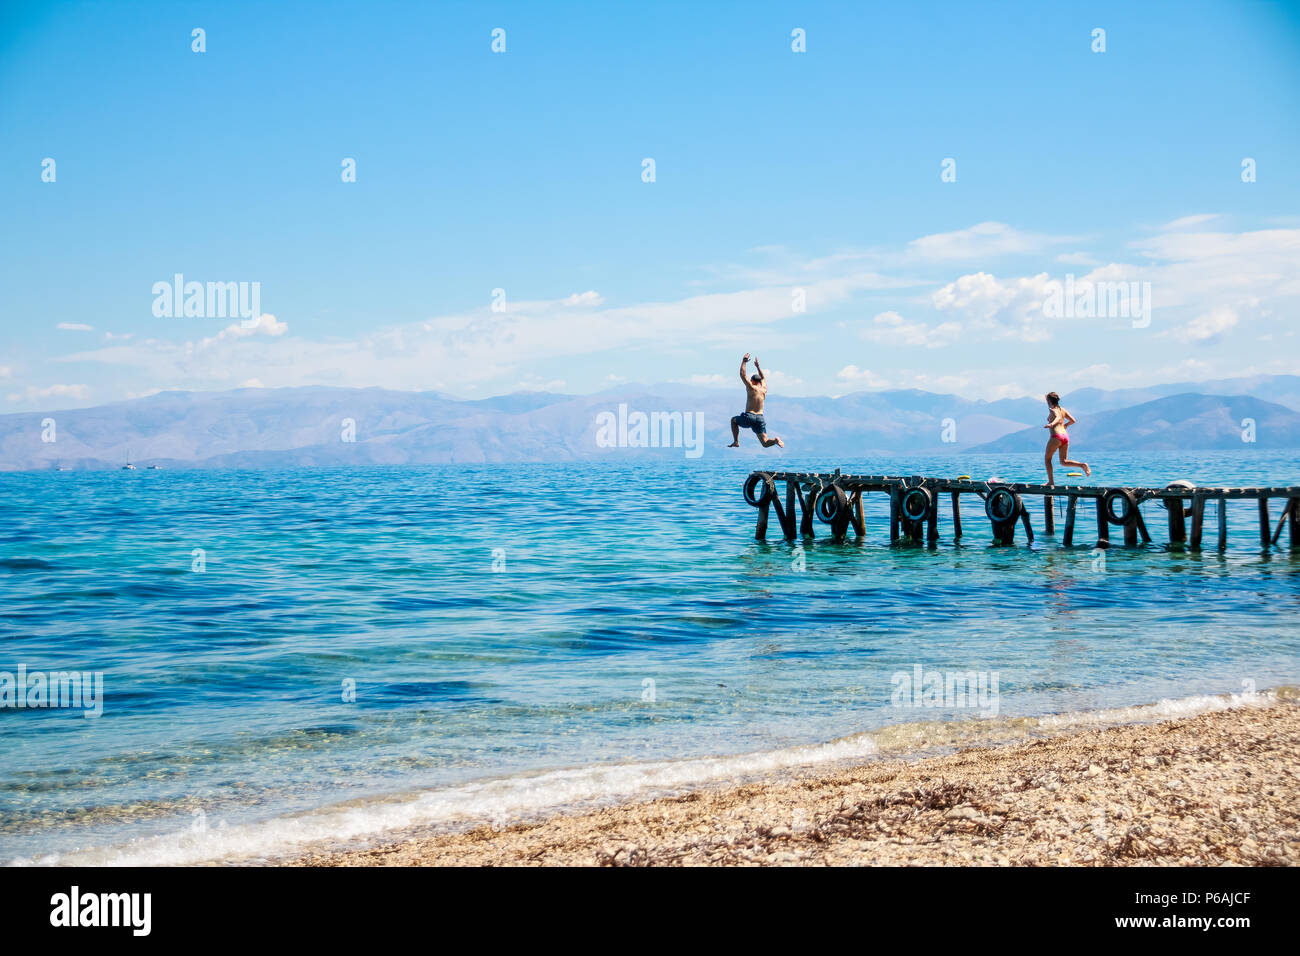 teenagers jumping off the pier into the sea. fun summer vacation.Young man jumps into the blue water from pier. View in motion.Happiness, summer, fun.Copy space Stock Photo